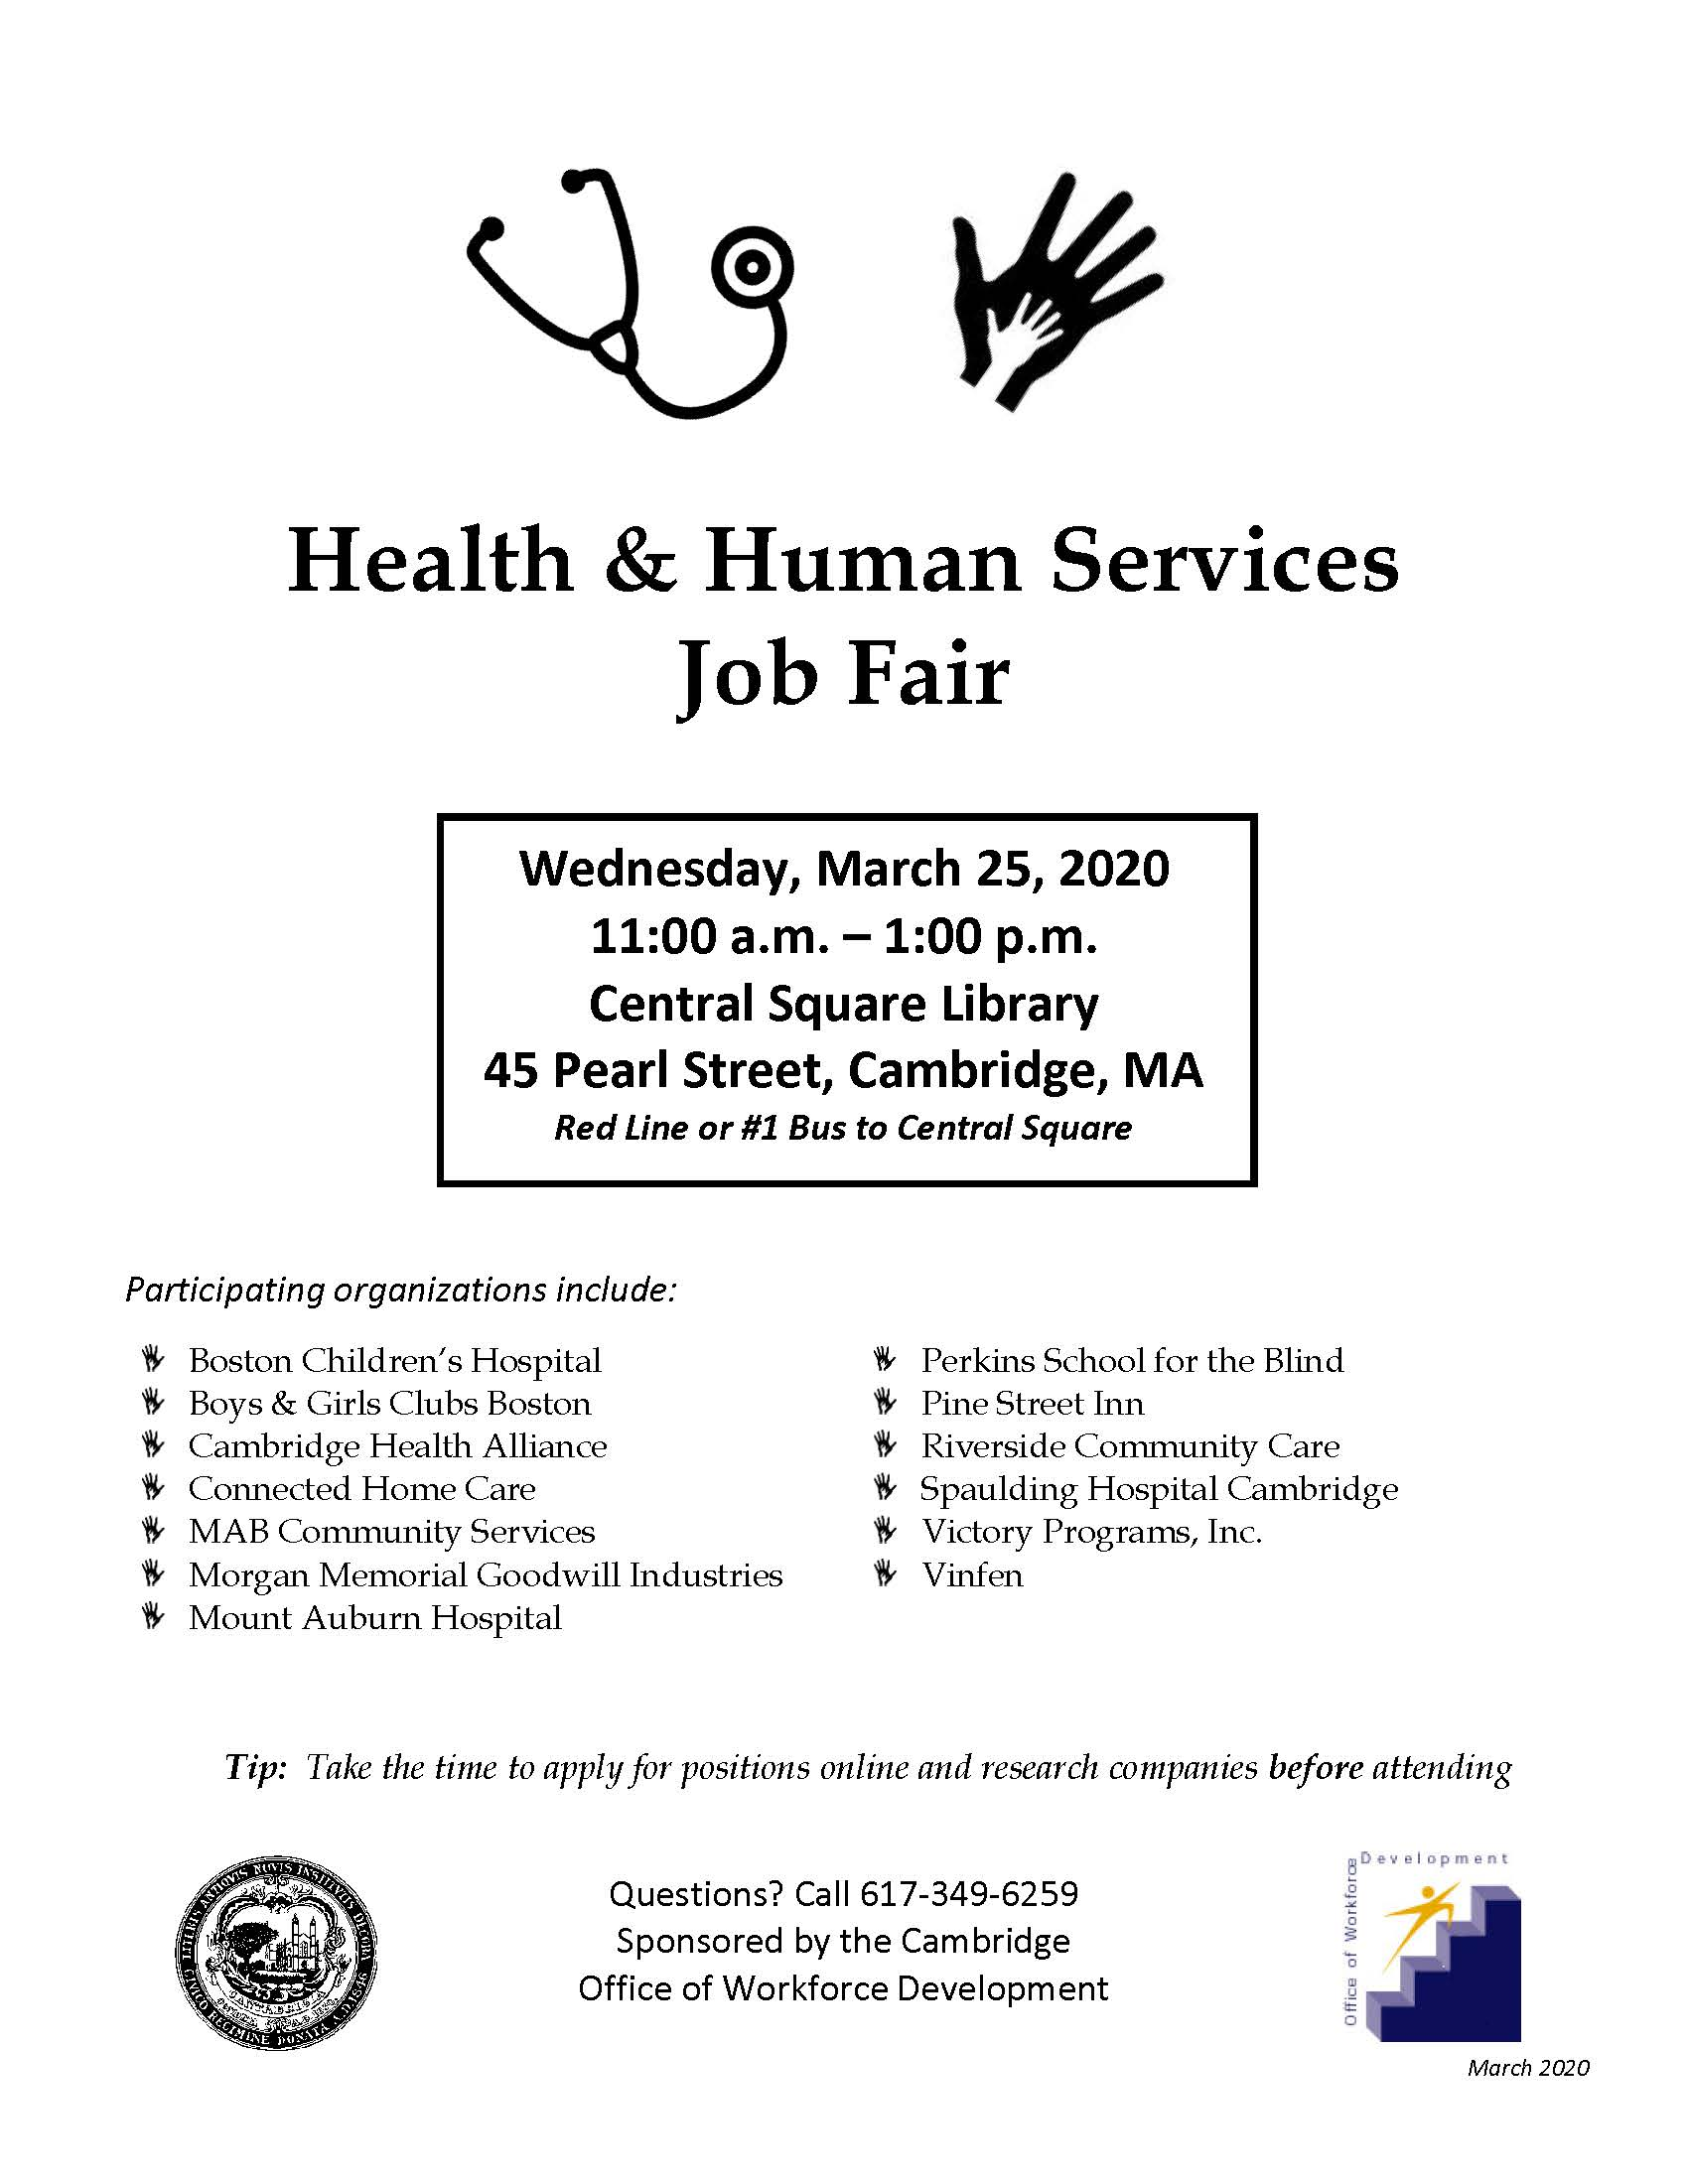 Health and Human Services Job Fair - City of Cambridge, MA